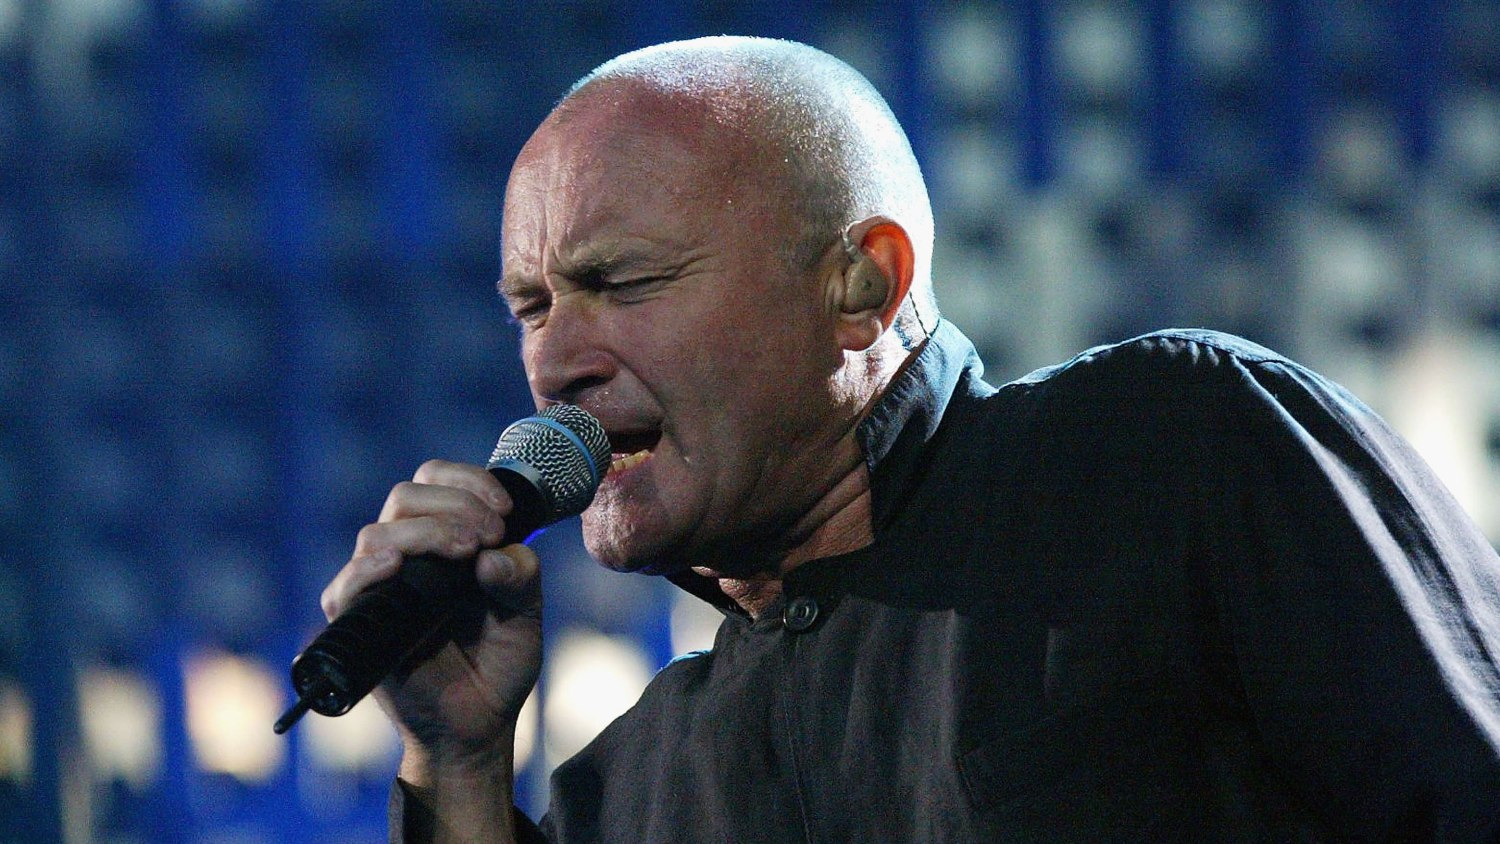 Phil Collins The Man That Everyone Loves To Hate The